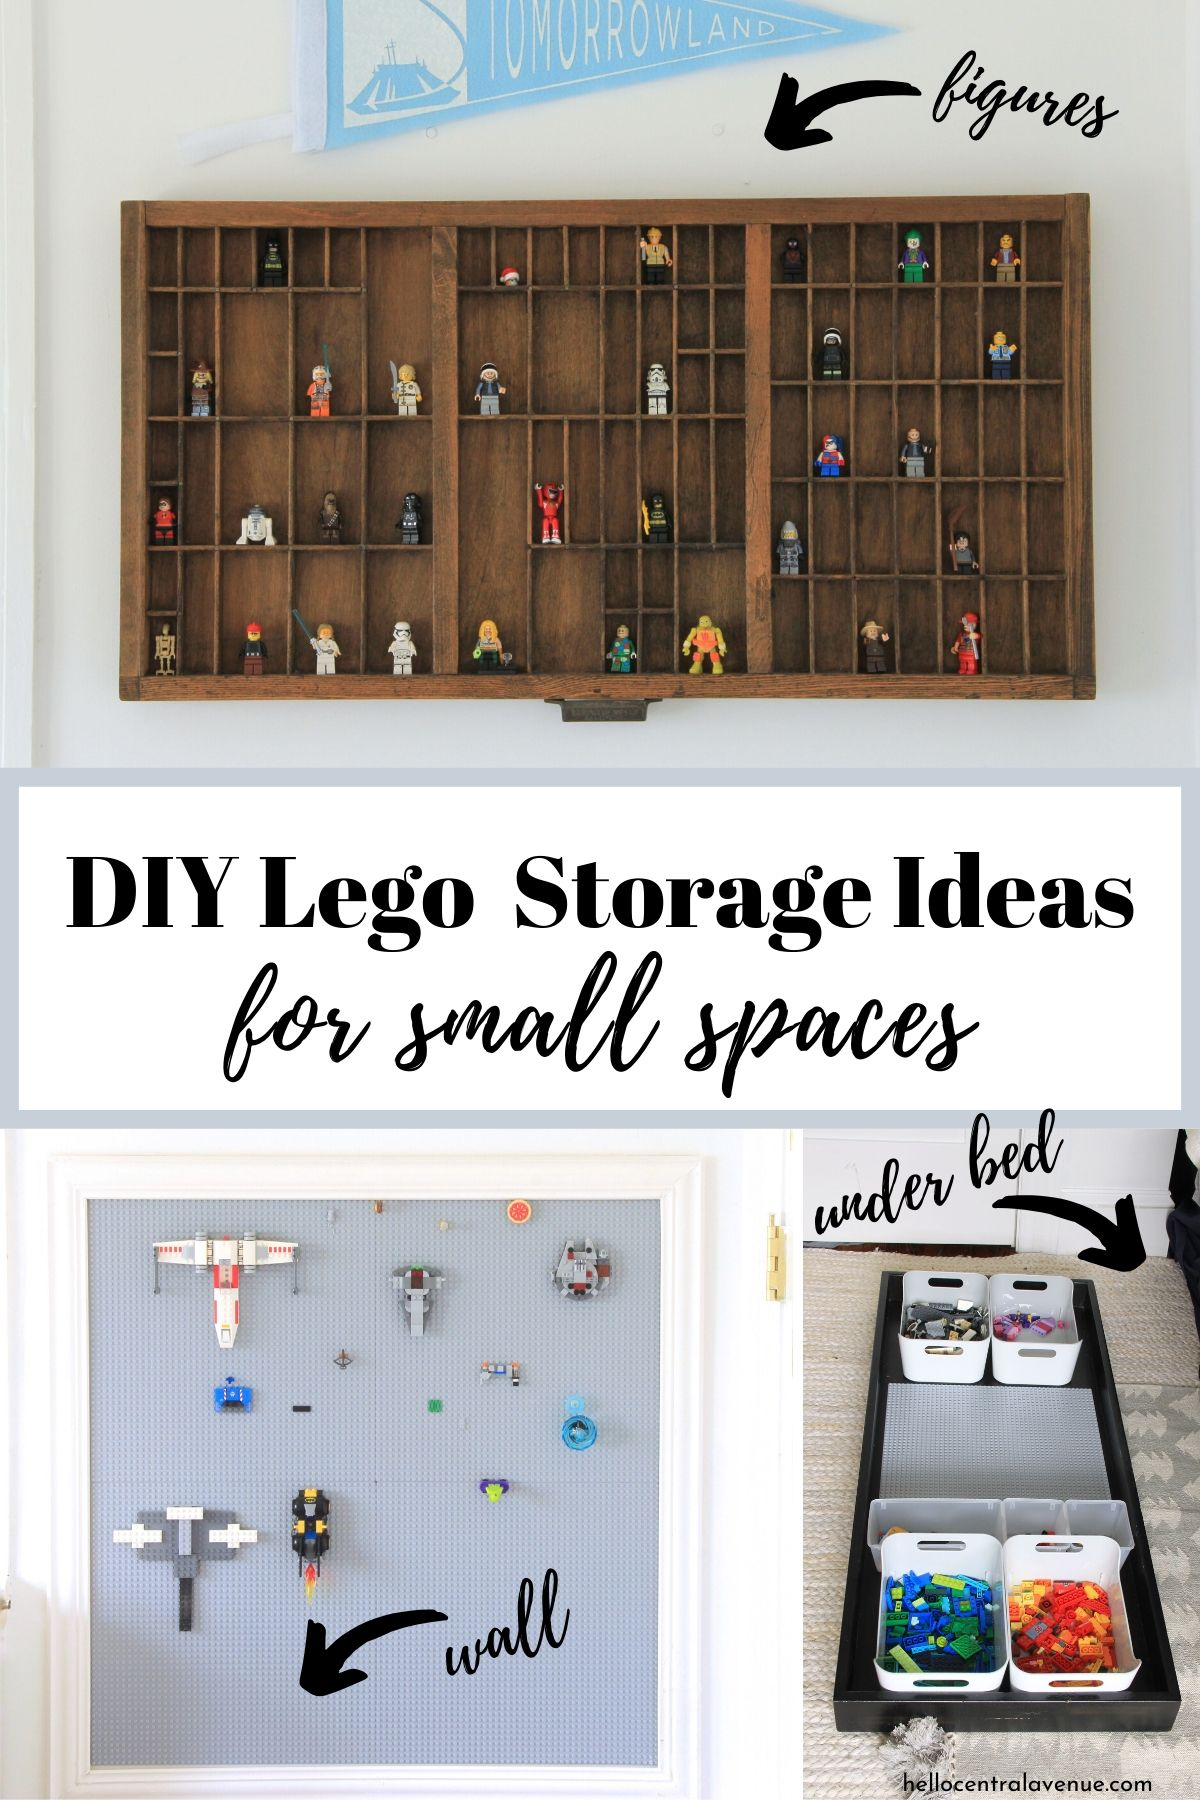 Diy Lego Storage Ideas For A Small Space Week 4 Hello Central Avenue